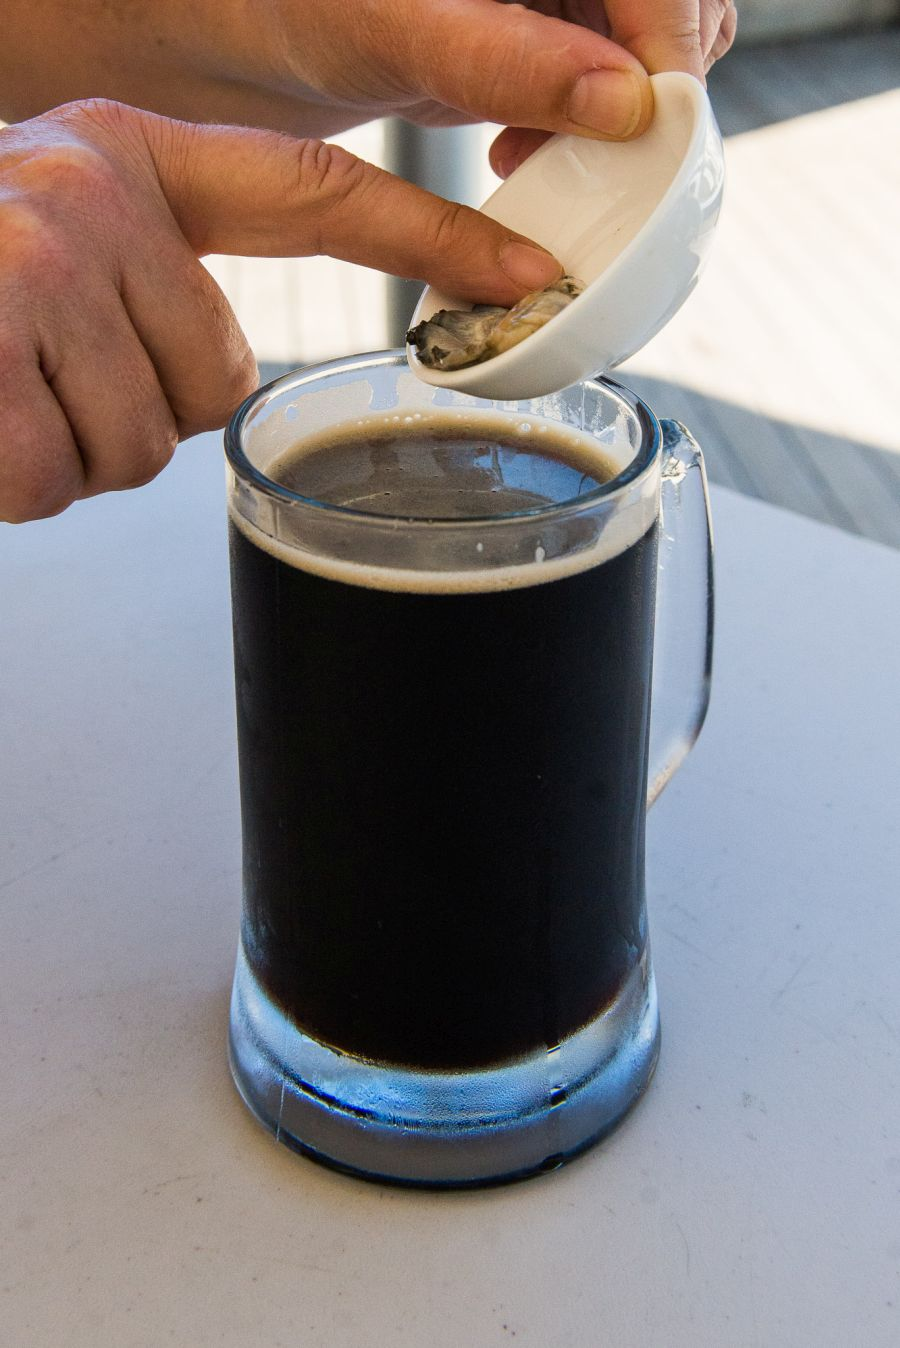 Drunkening the oyster - Onetangi dark ale